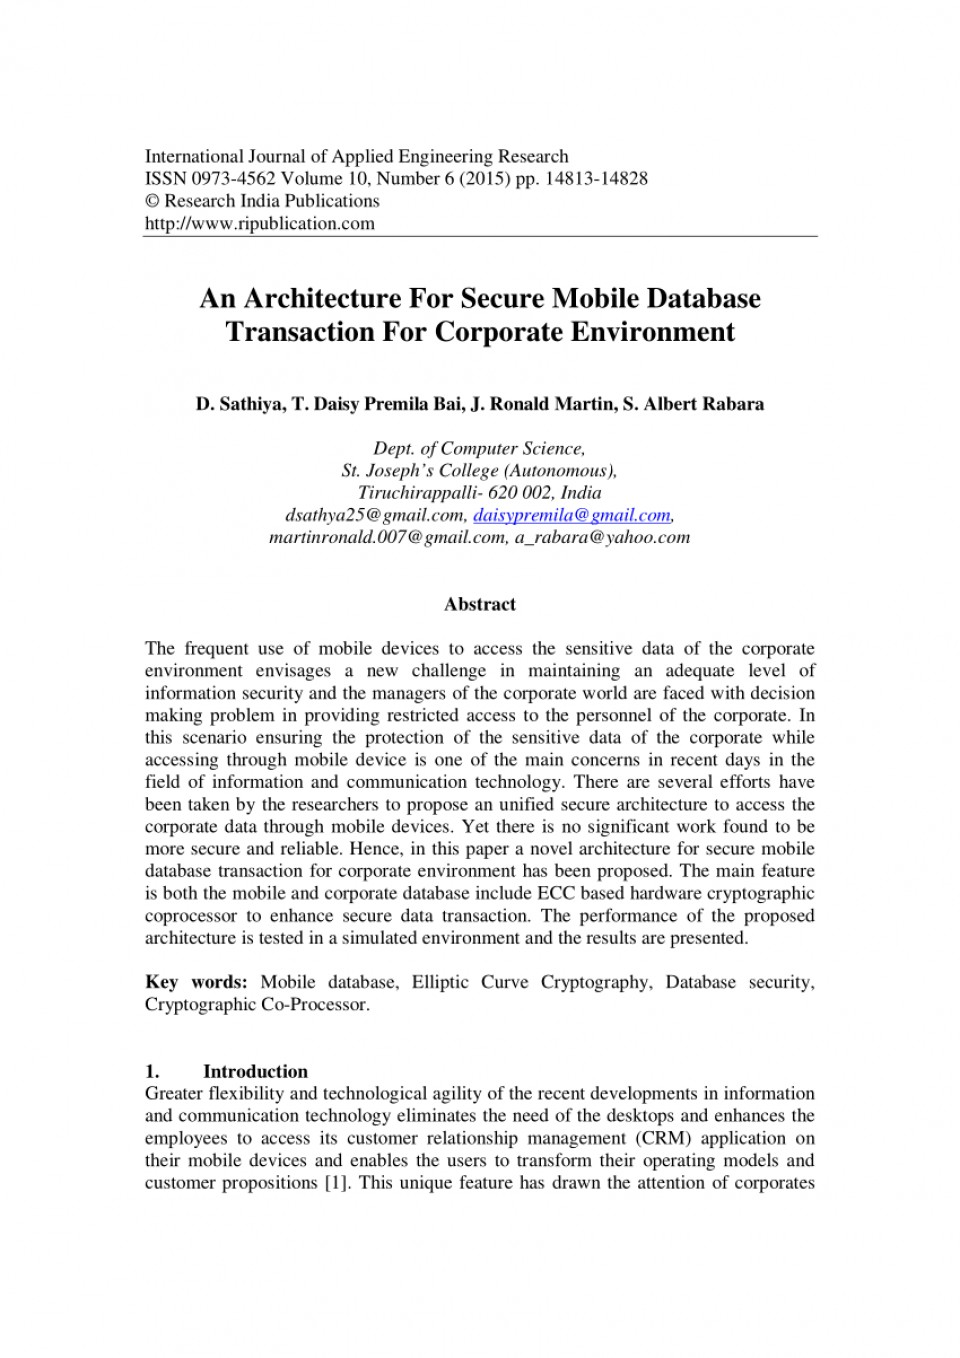 010 Database Security Research Paper Abstract Fascinating 960